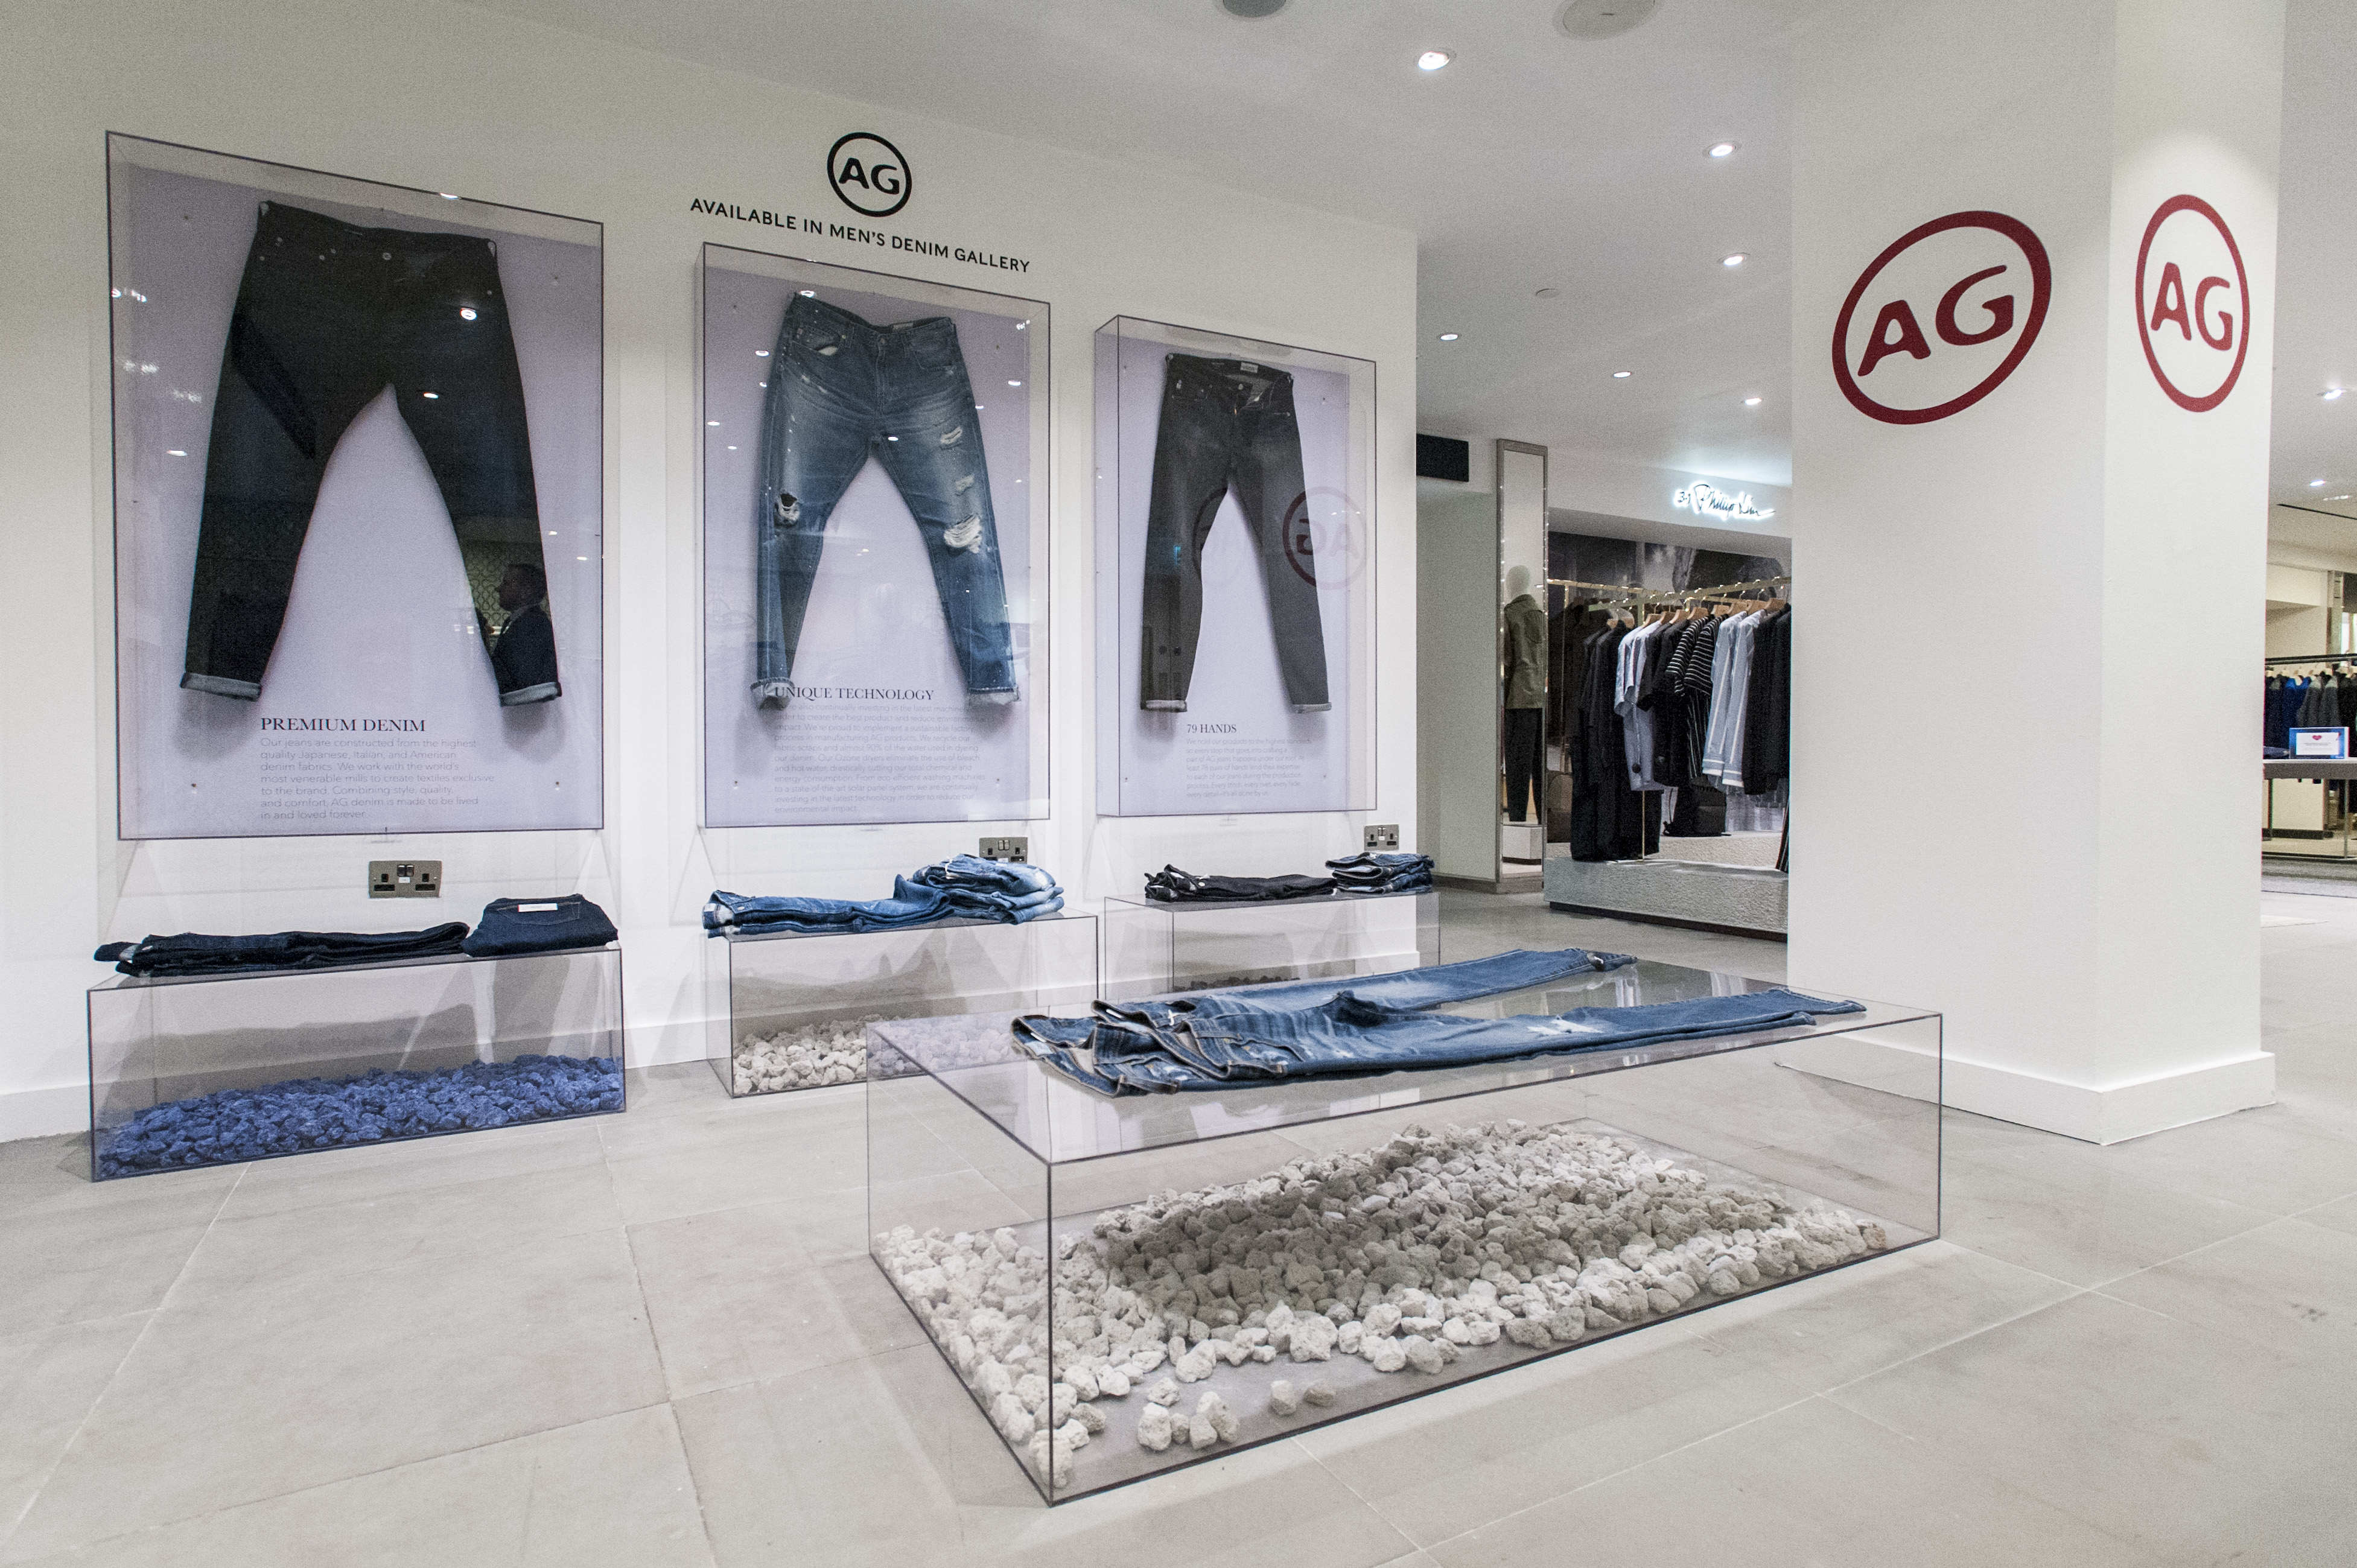 A Look Inside The AG Jeans Pop-Up Installation At Harrods